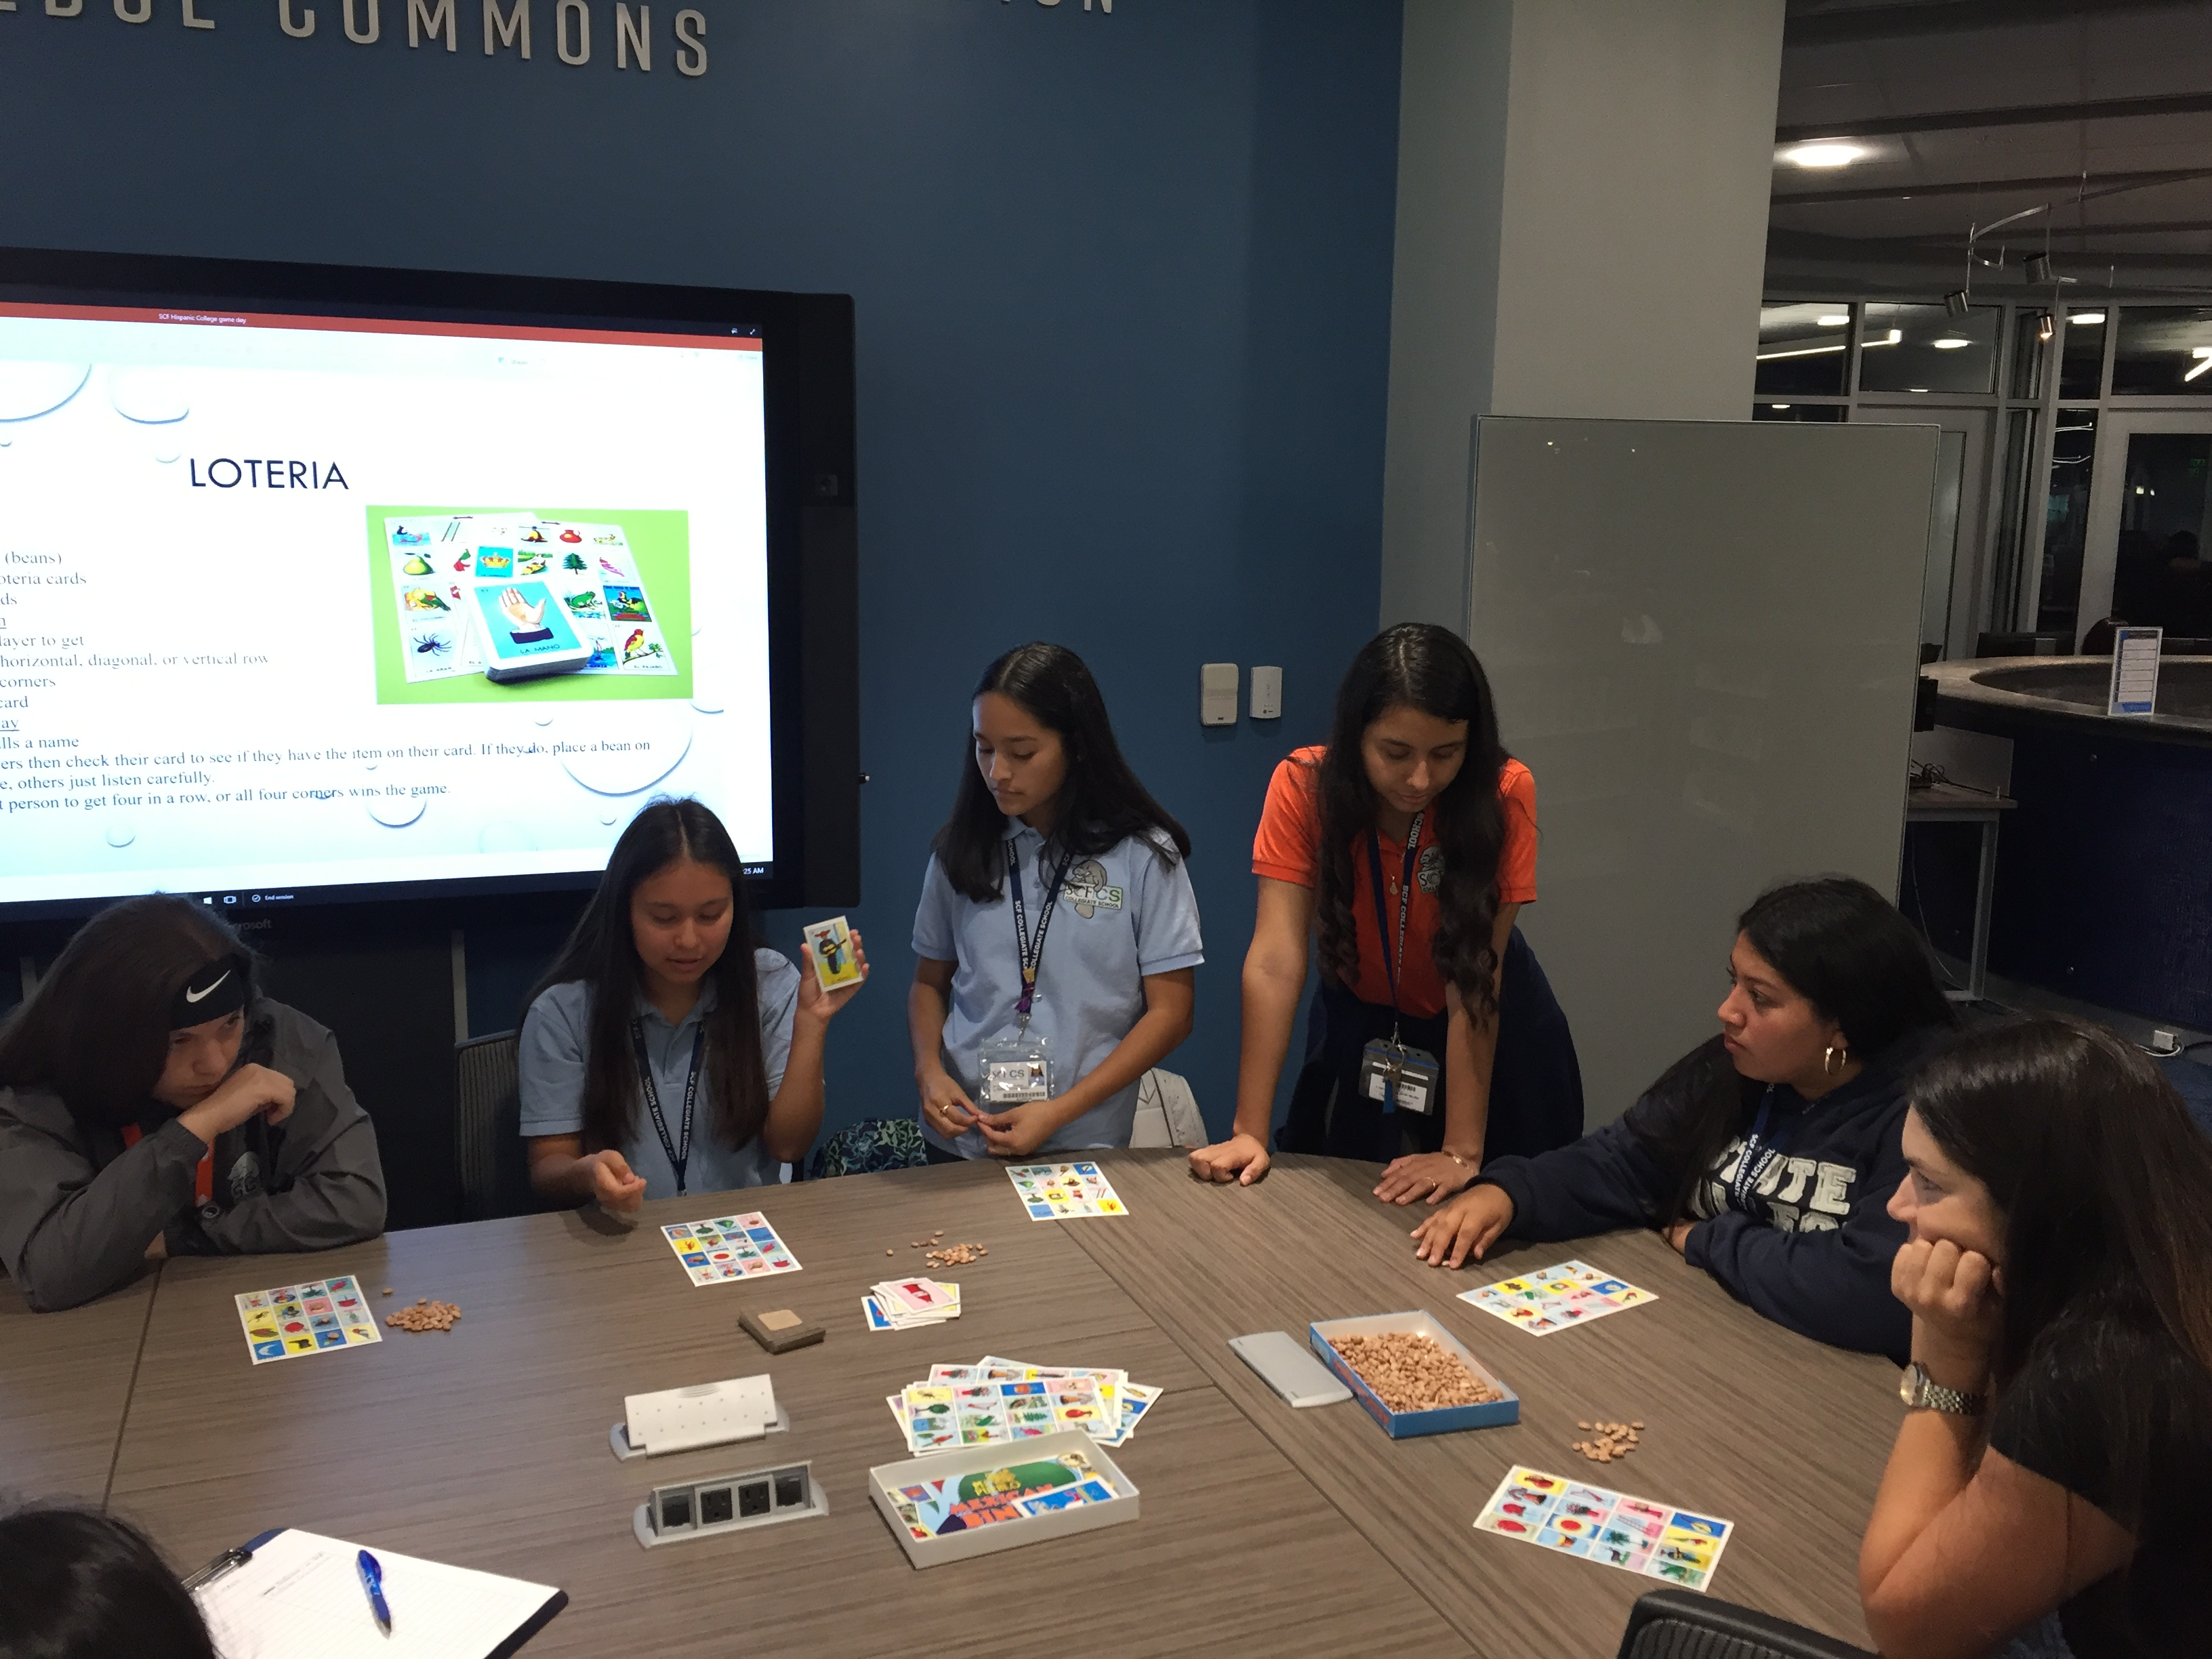 Students playing loteria